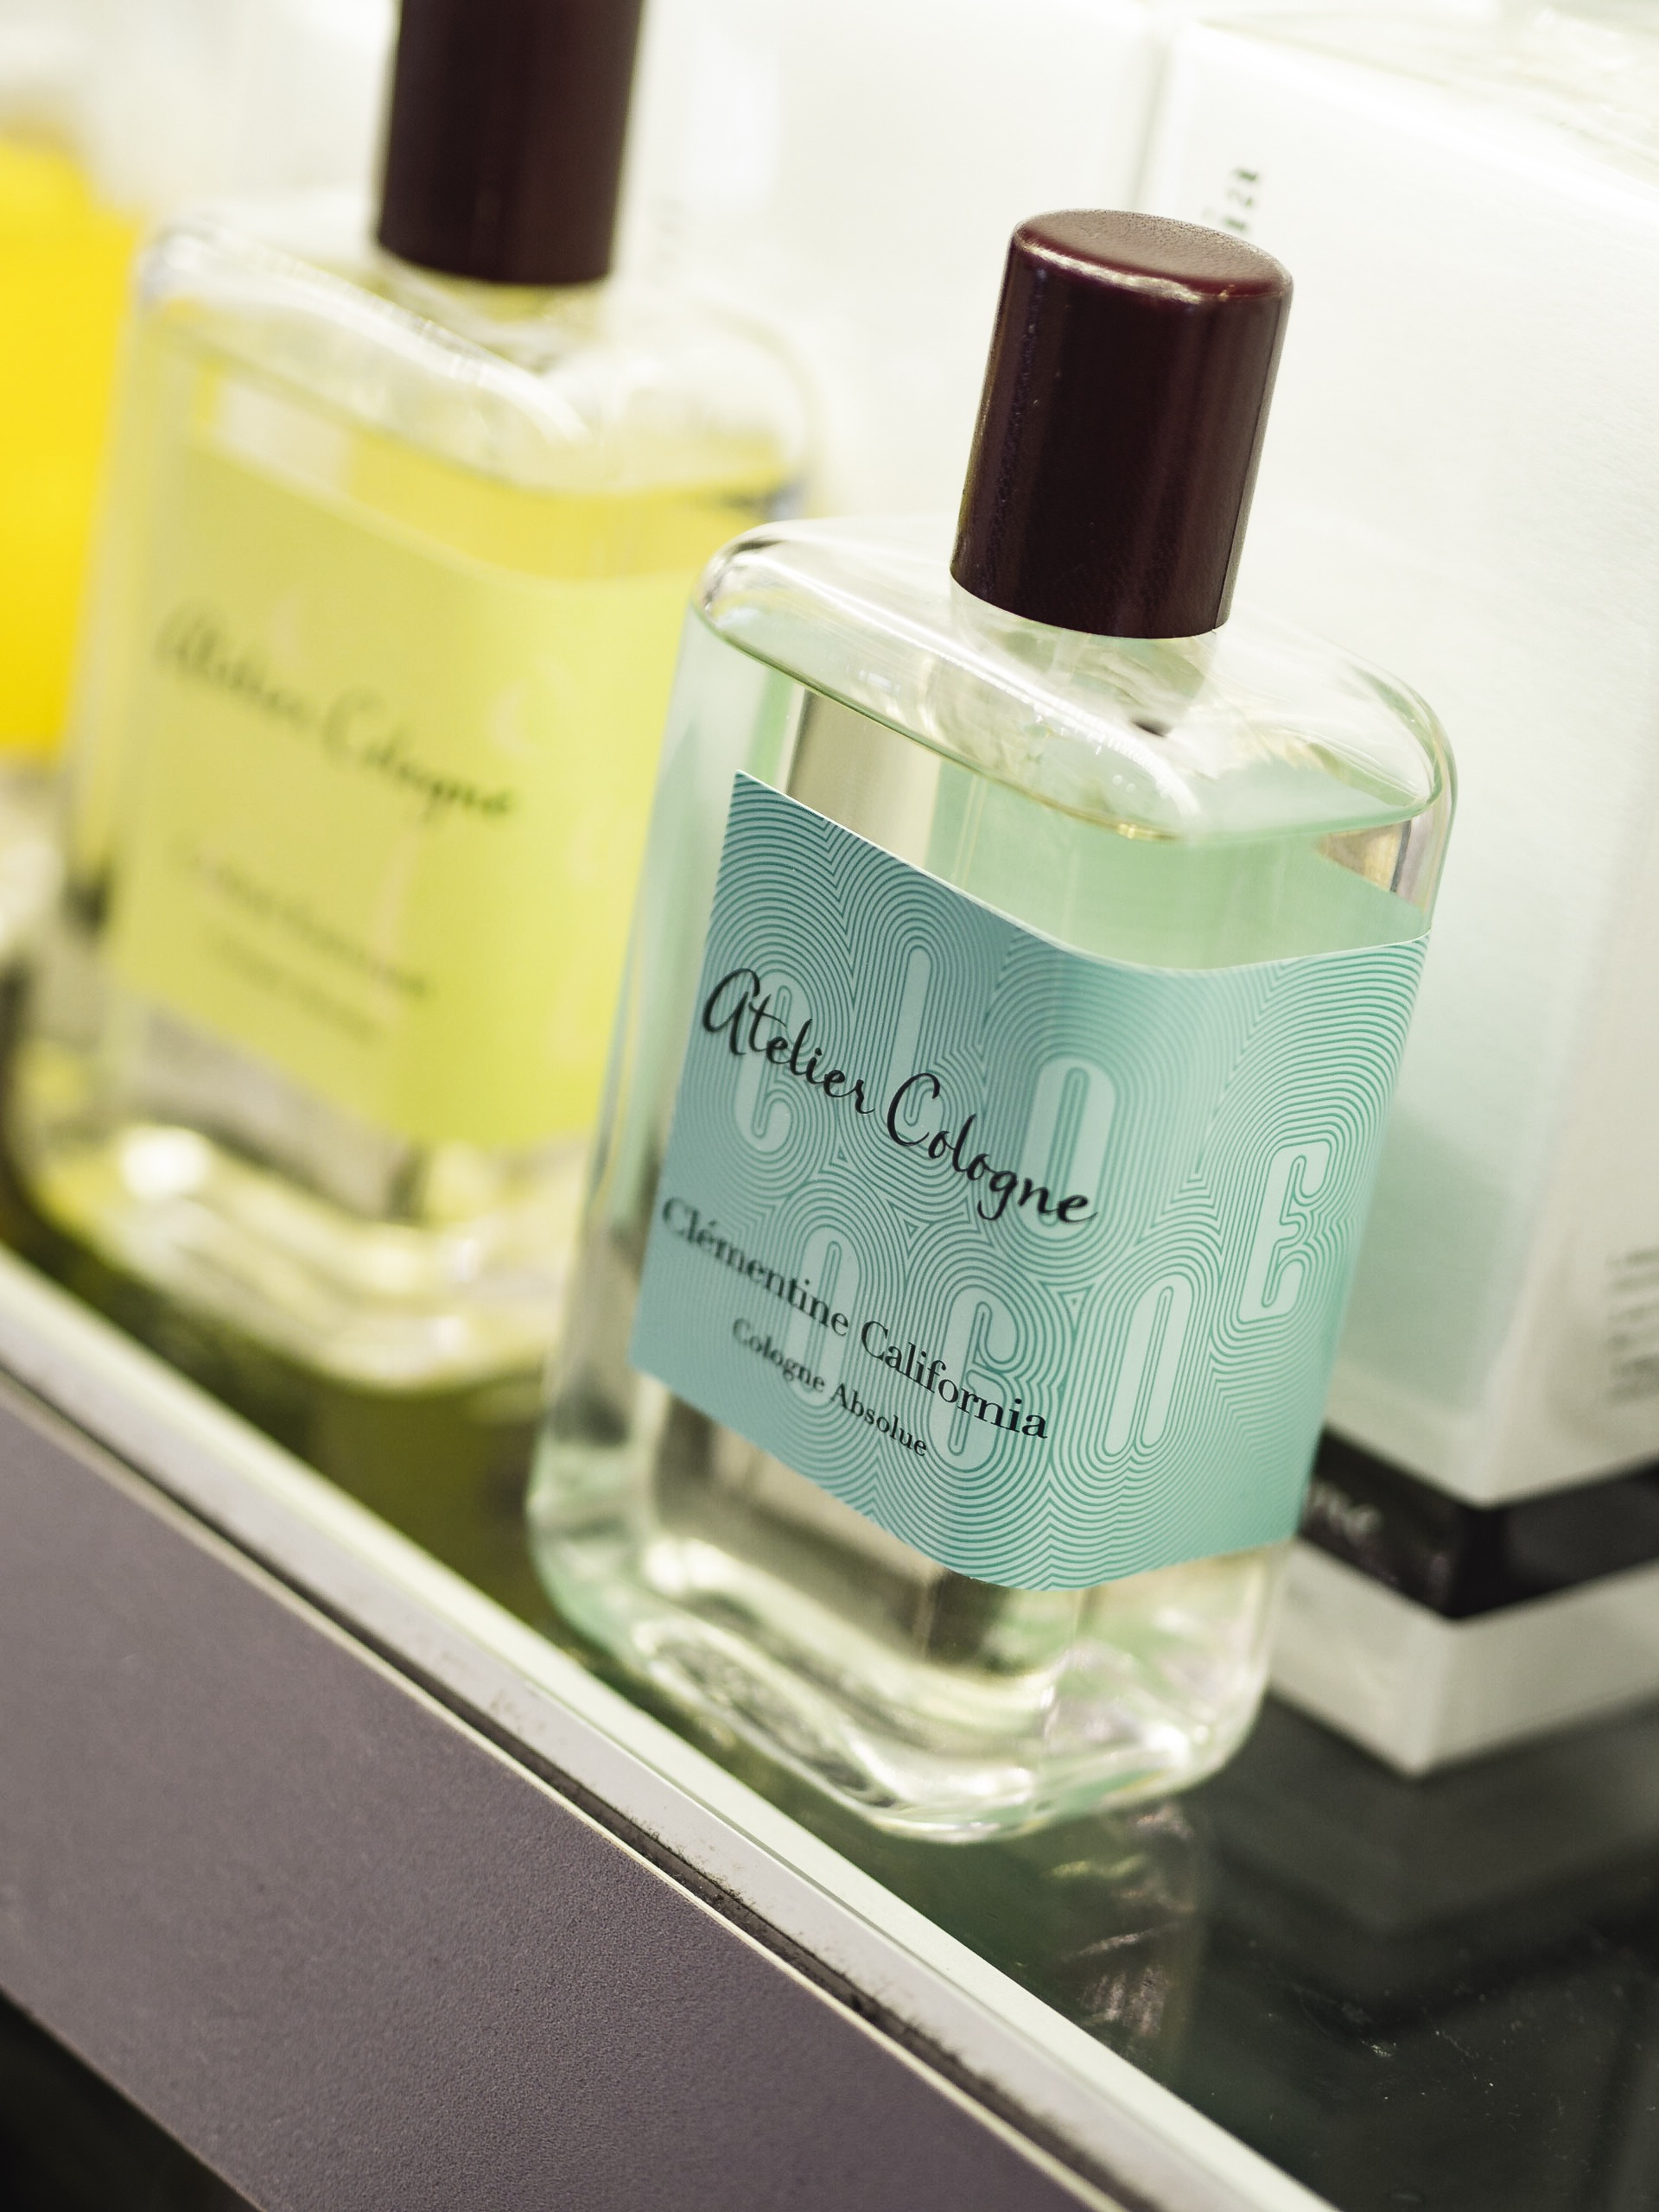 Heathrow Airport World Duty Free Fragrance Atelier Cologne Clementine California